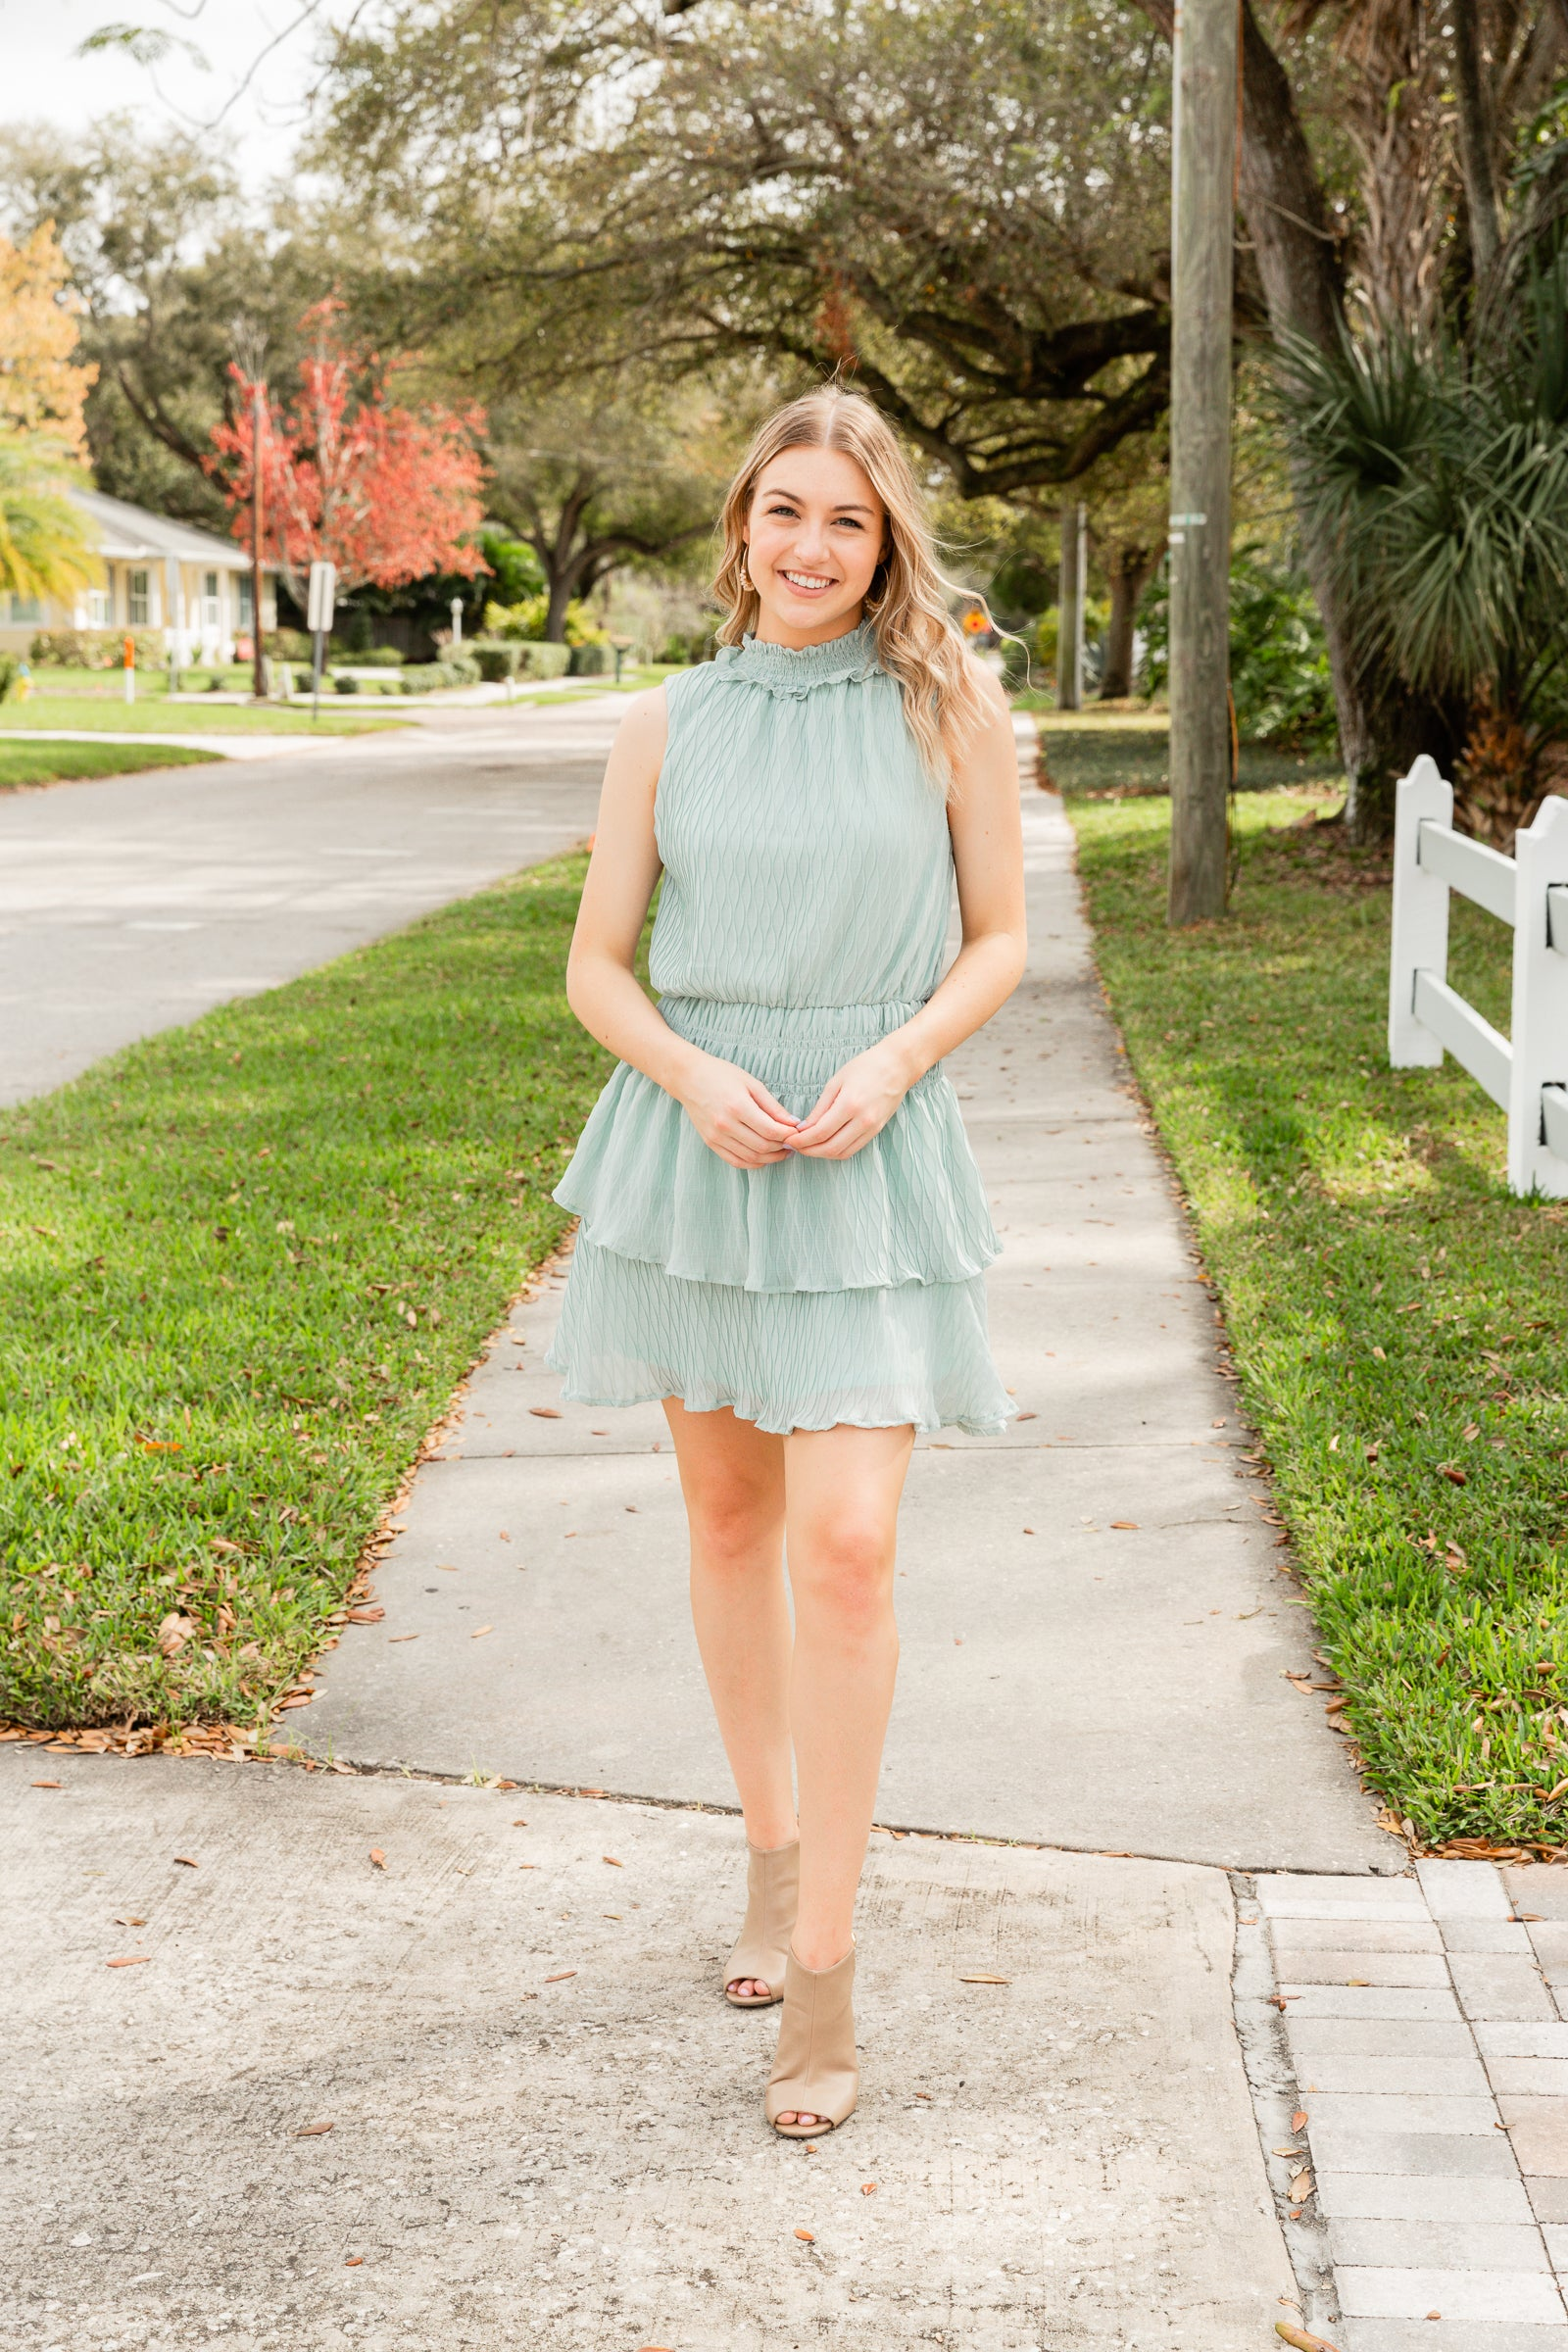 This lightweight and textured dress is sleeveless with a smocked mock neckline that attaches to a relaxed bodice silhouette and meets a smocked waistband before going into a layered ruffle skirt.